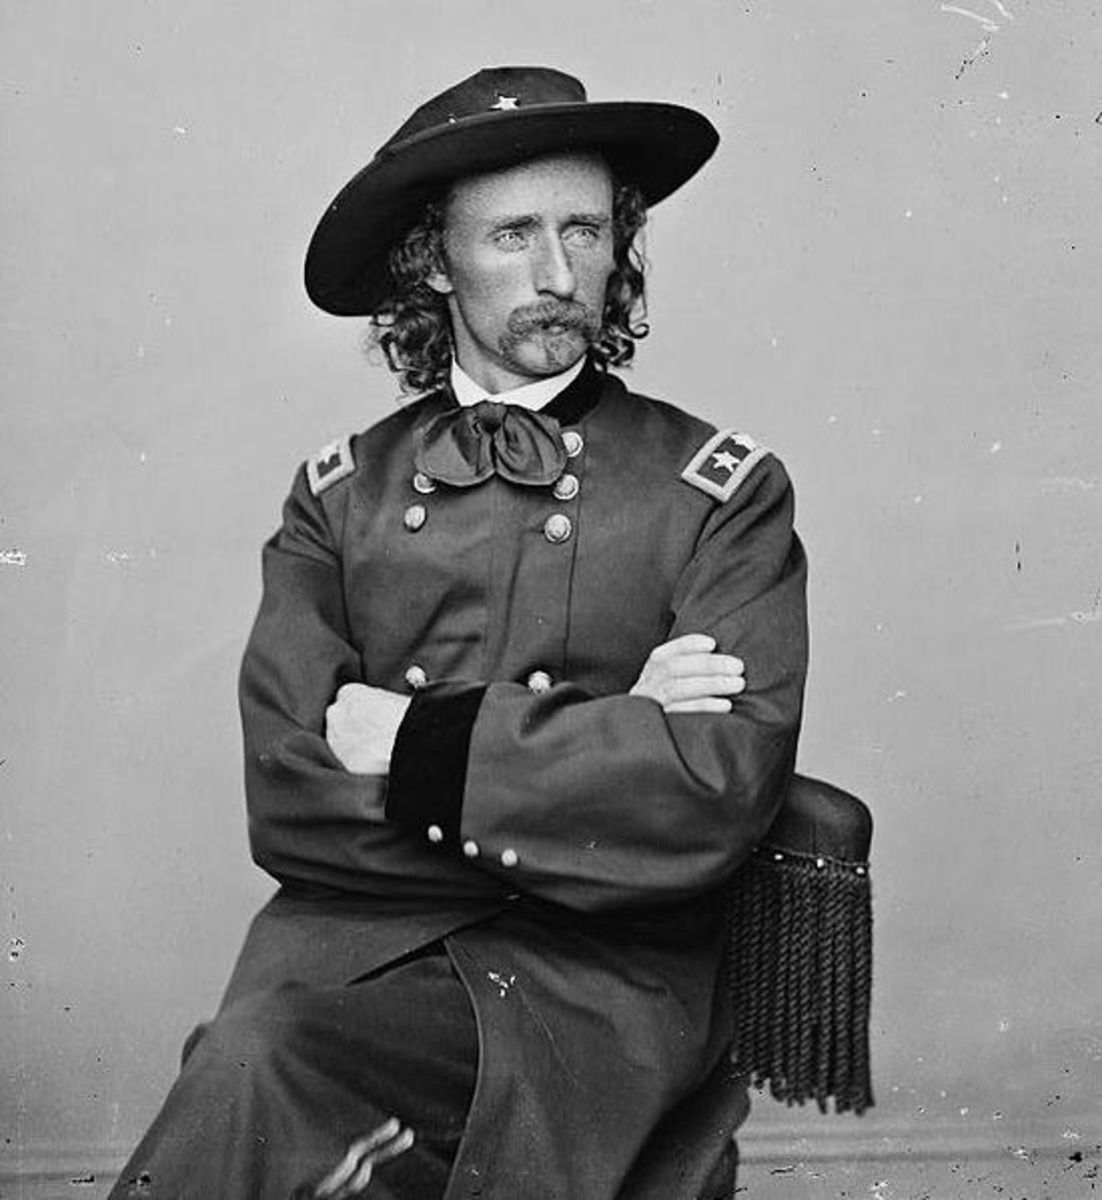 Destiny Delayed: Custer and the Trading Post Scandal